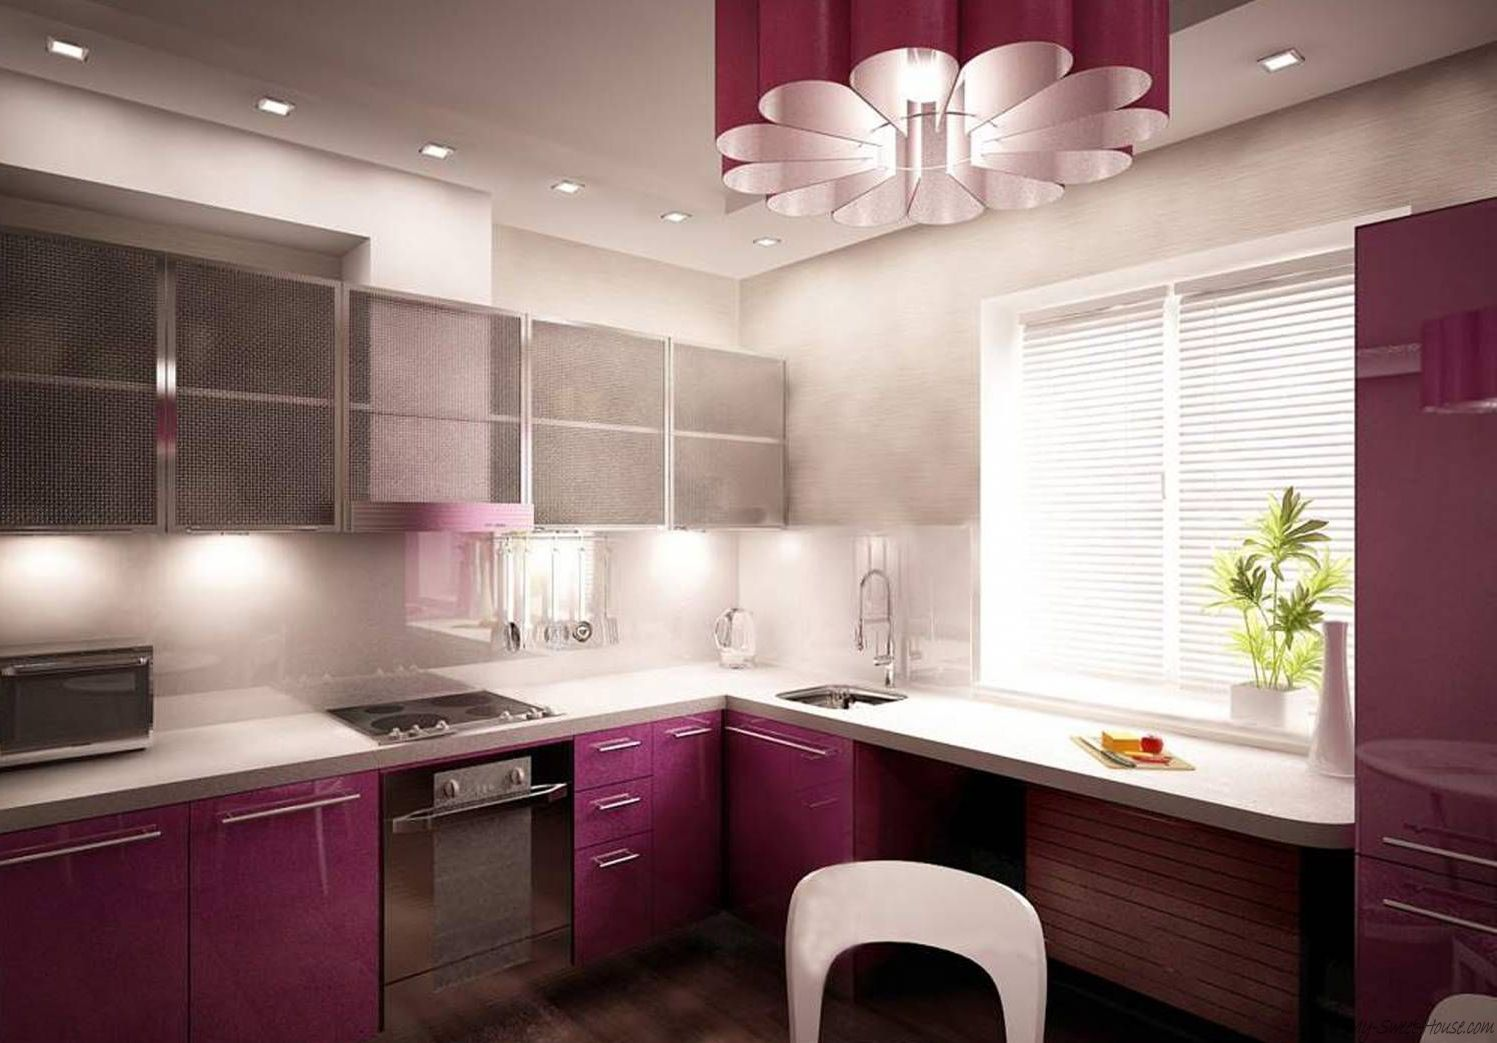 free-kitchen-design-idea-21